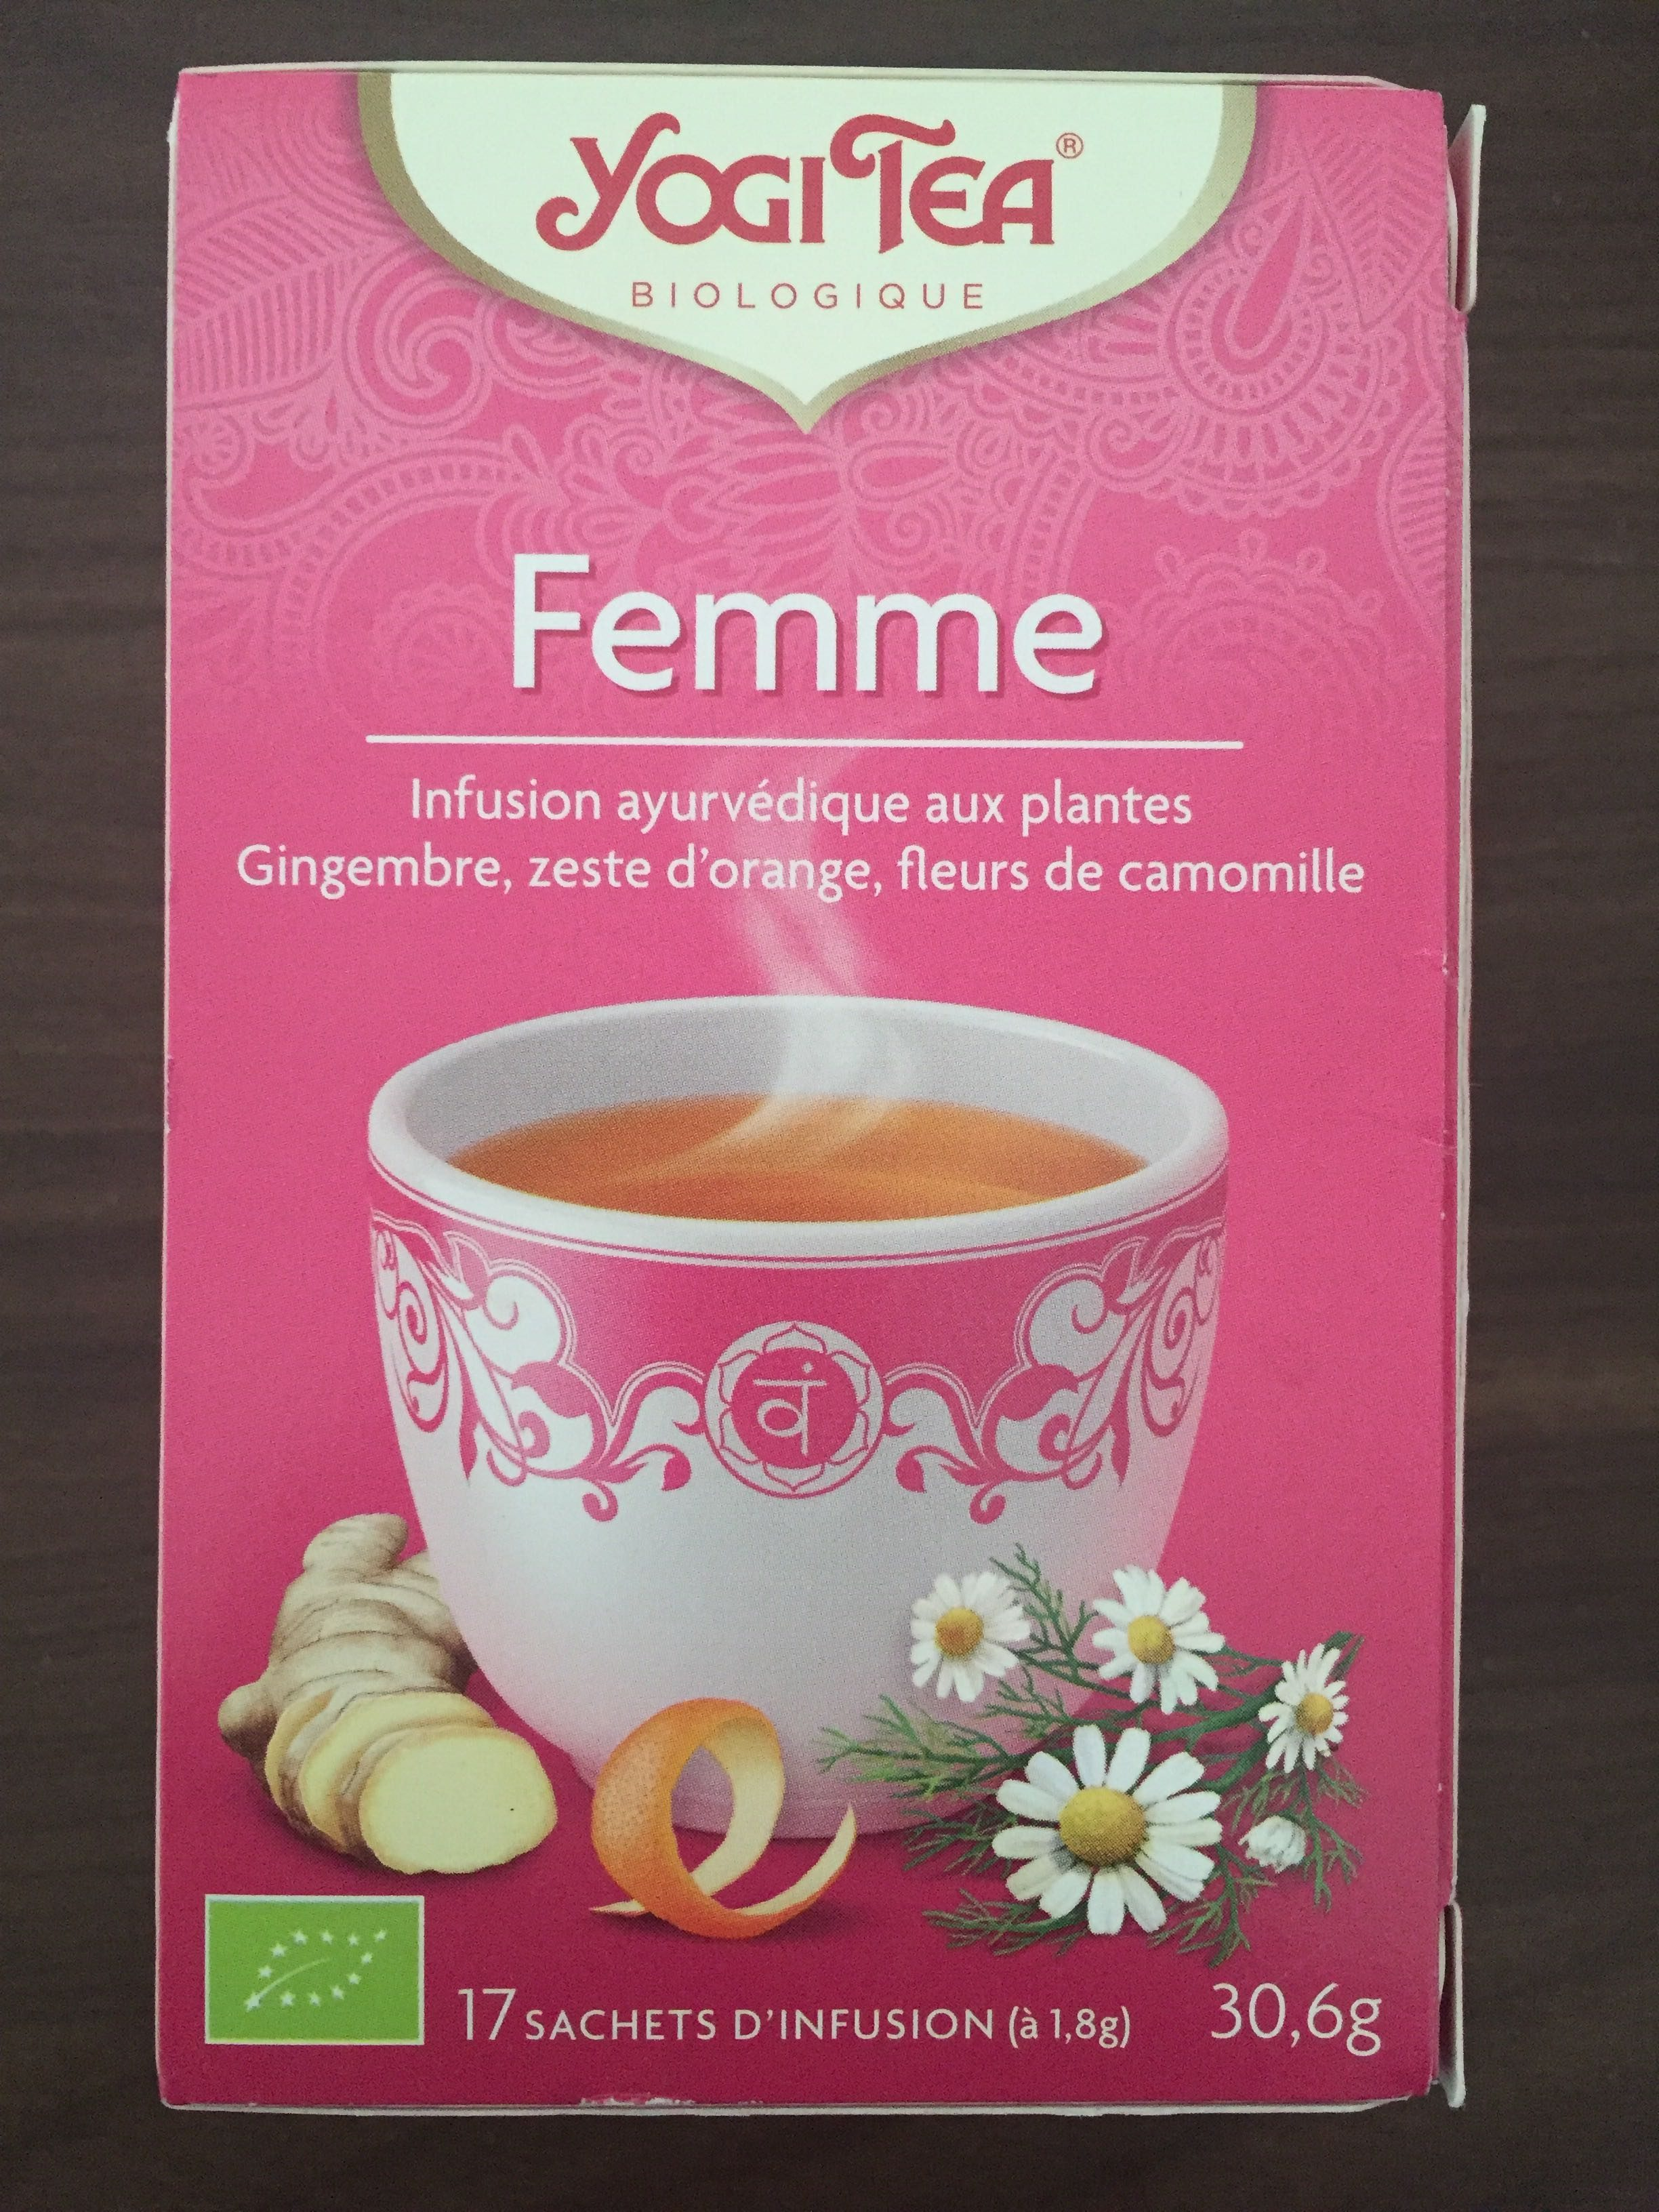 Femme - Product